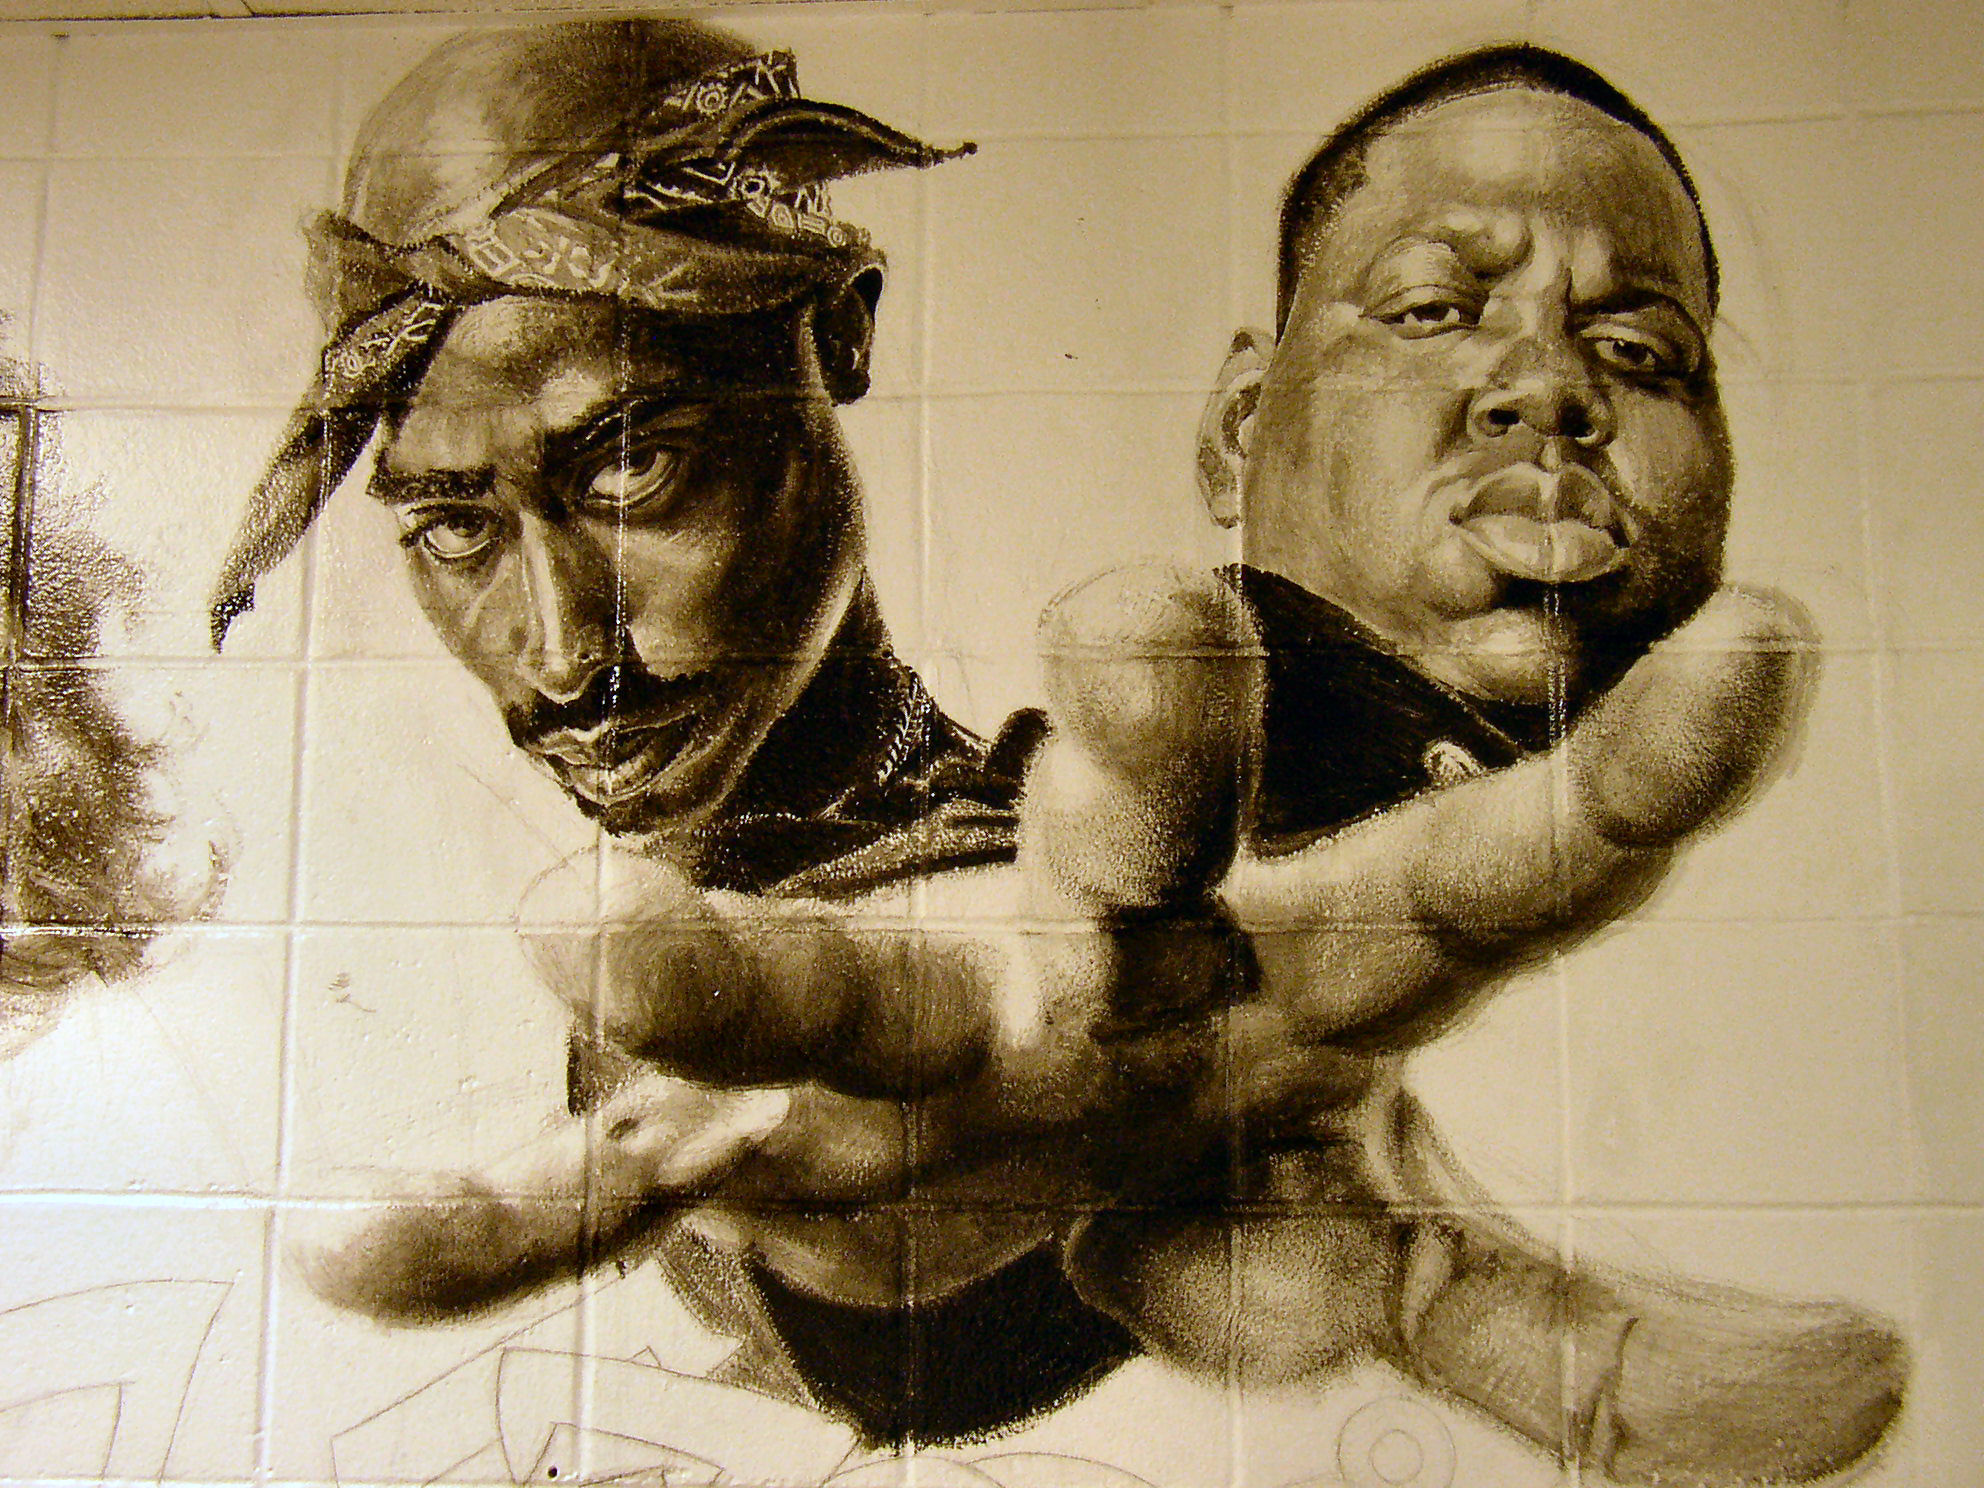 school mural: 2Pac and Biggie by deadhead16mb on DeviantArt